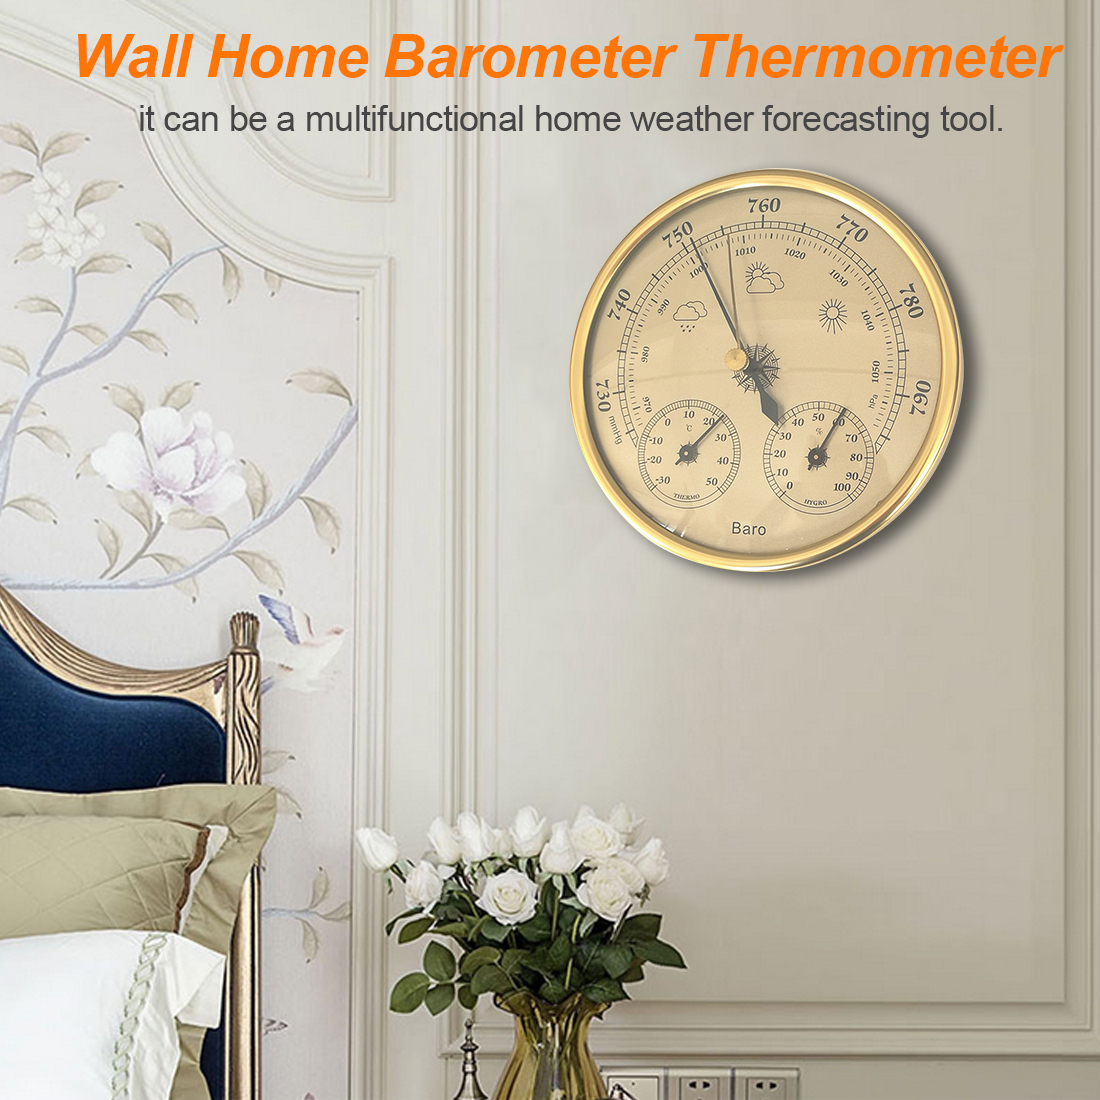 1pc Wall Mounted Household Barometer Thermometer Hygrometer Weather Station Hanging Instrument